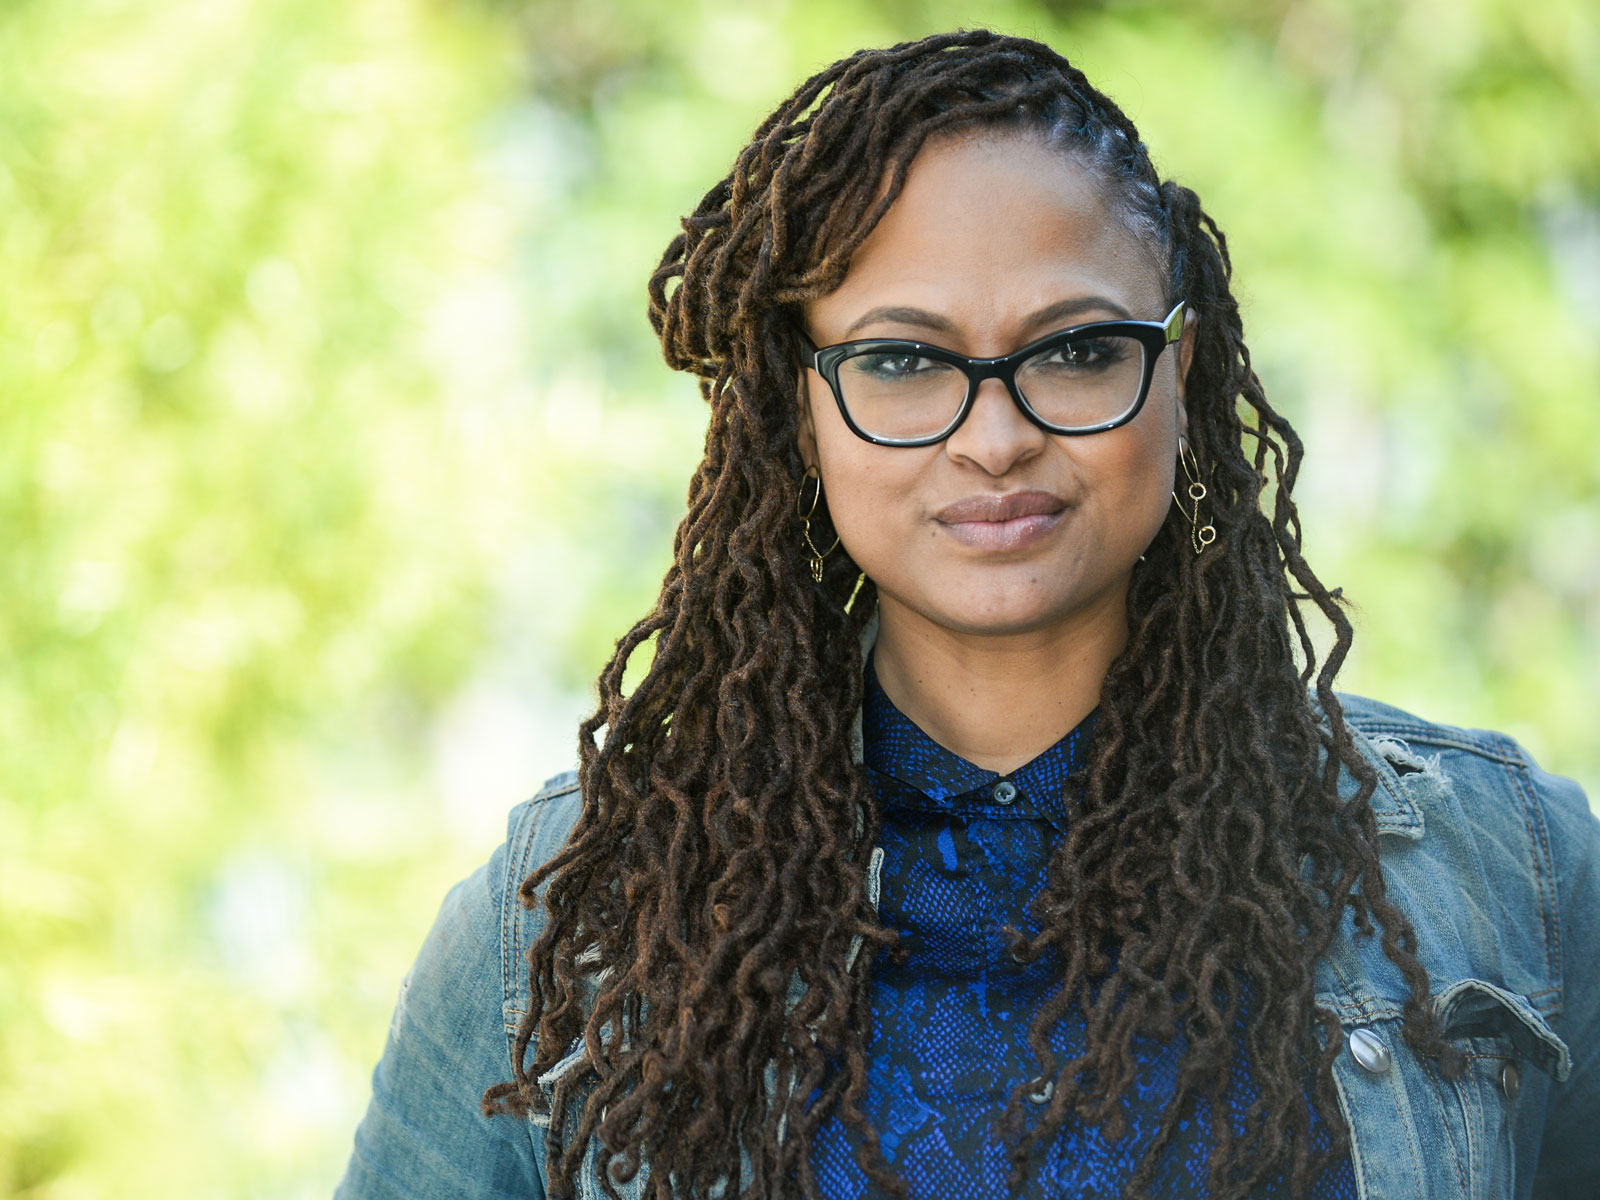 Ava DuVernay Gathers Chefs to Talk Authenticity, Inclusion, and Healing